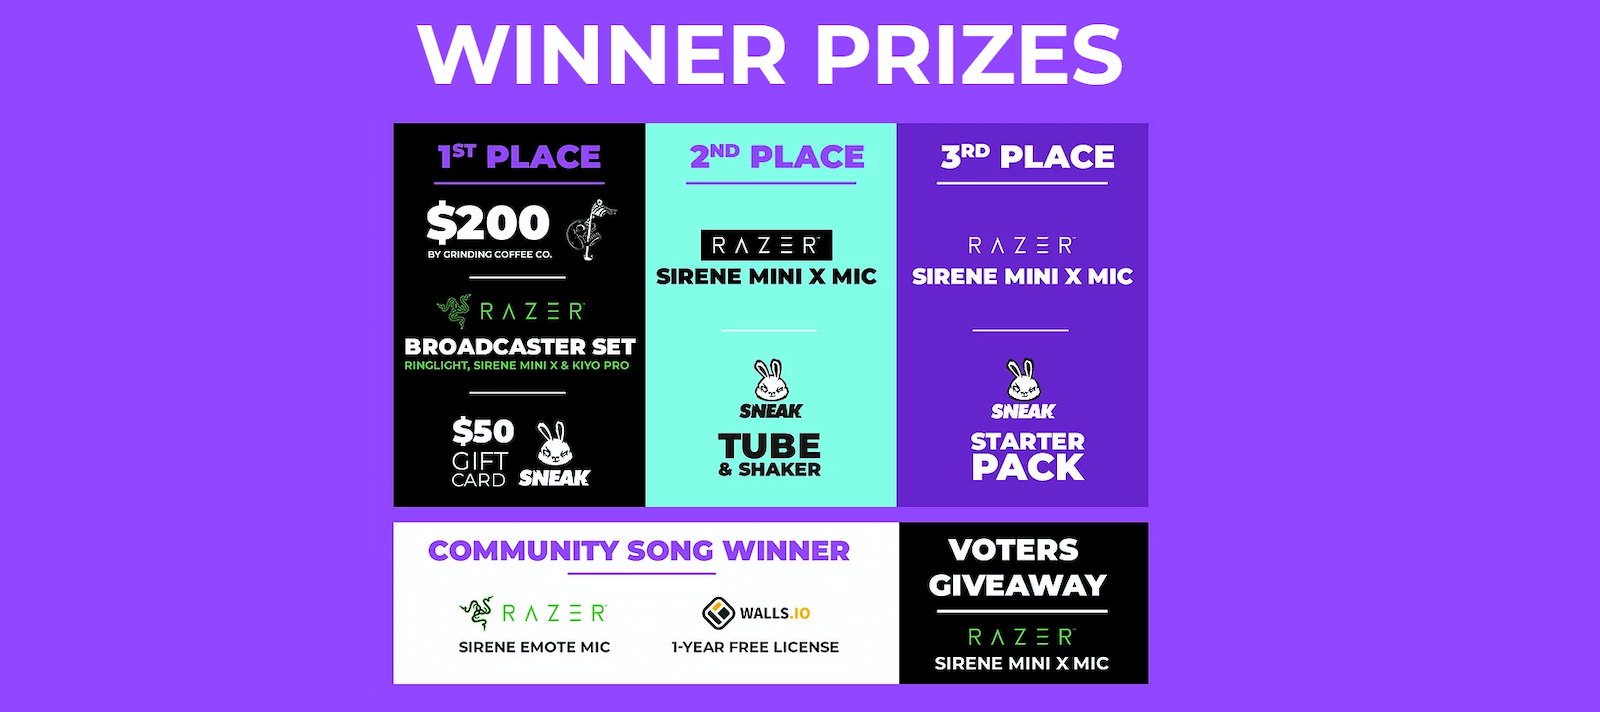 Screenshot from the TwitchVision landing page announcing the prizes for the 1st, 2nd and 3rd placements of the song contest, the community song winner and a giveaway for the voters.